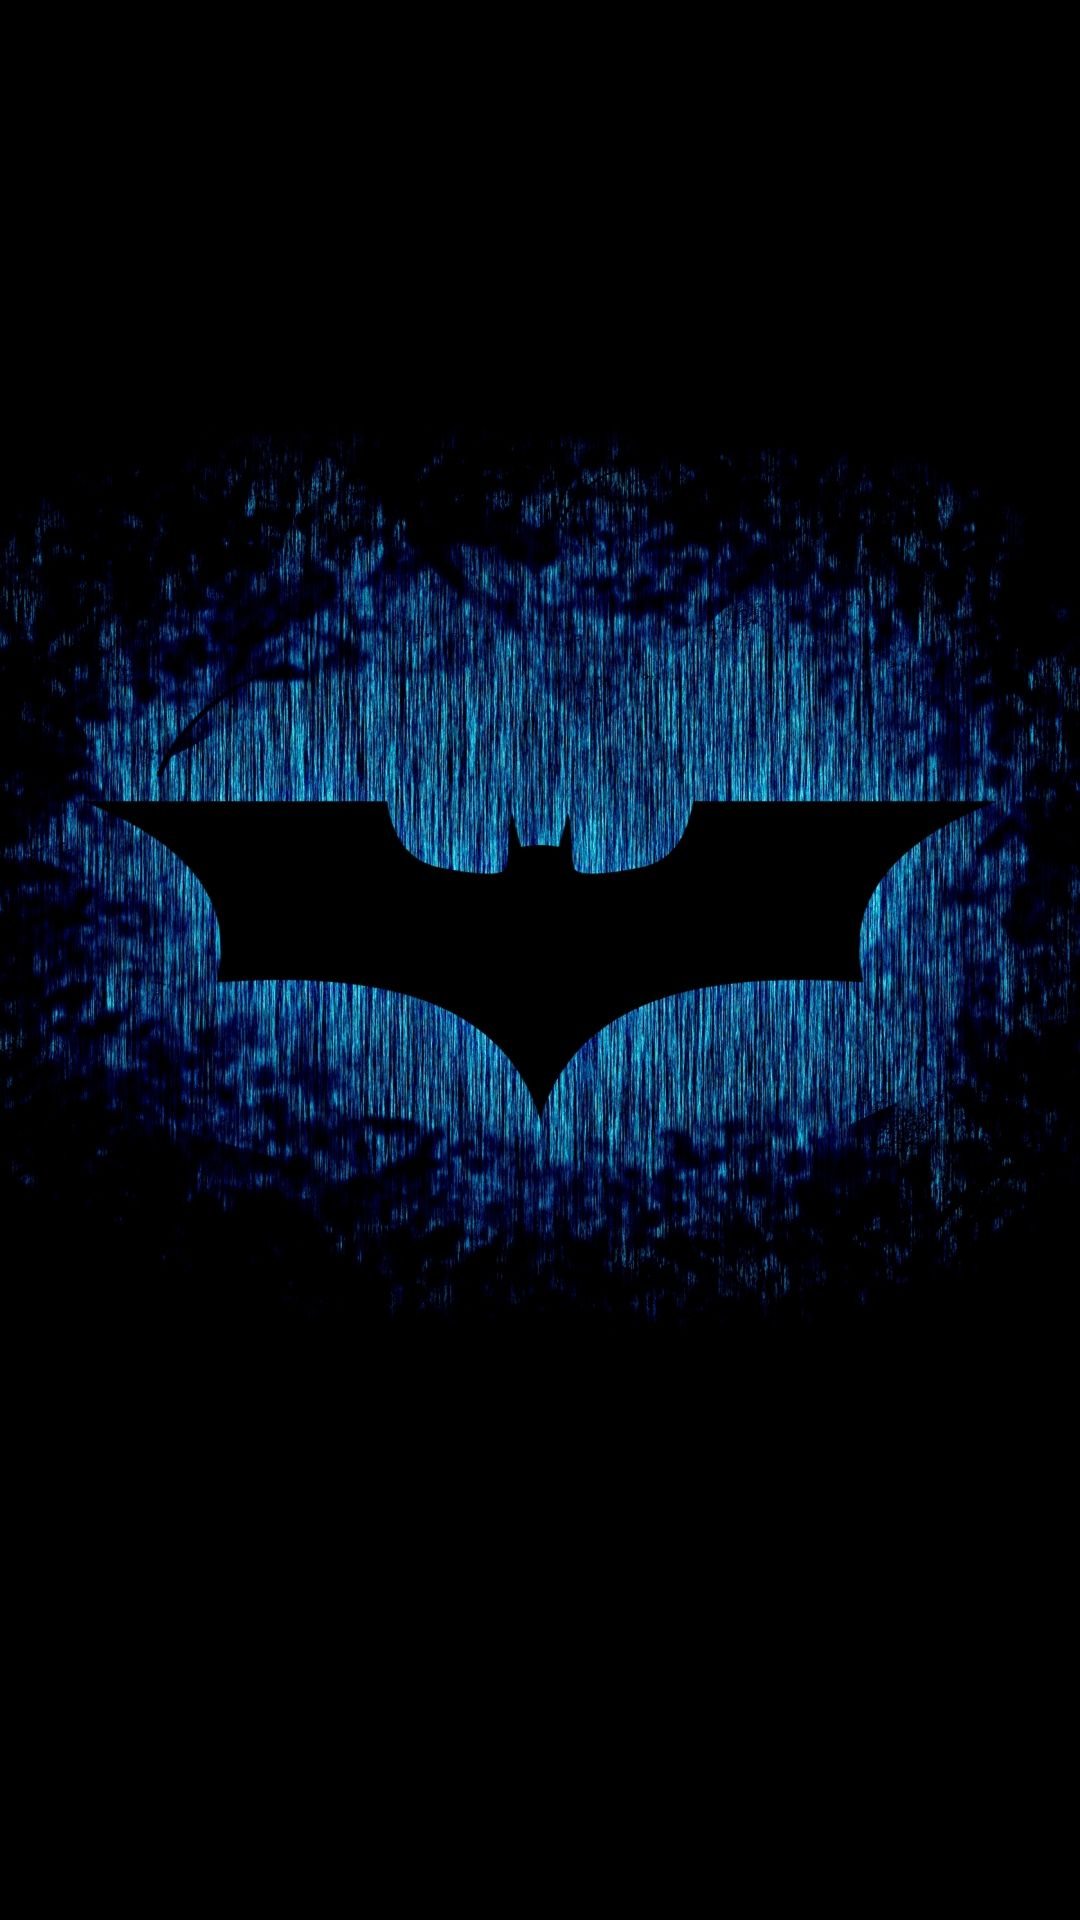 Batman Wallpapers For Iphone 7 Iphone 7 Plus Iphone 6 Plus Batman Wallpaper Iphone Batman Wallpaper Dark Knight Wallpaper